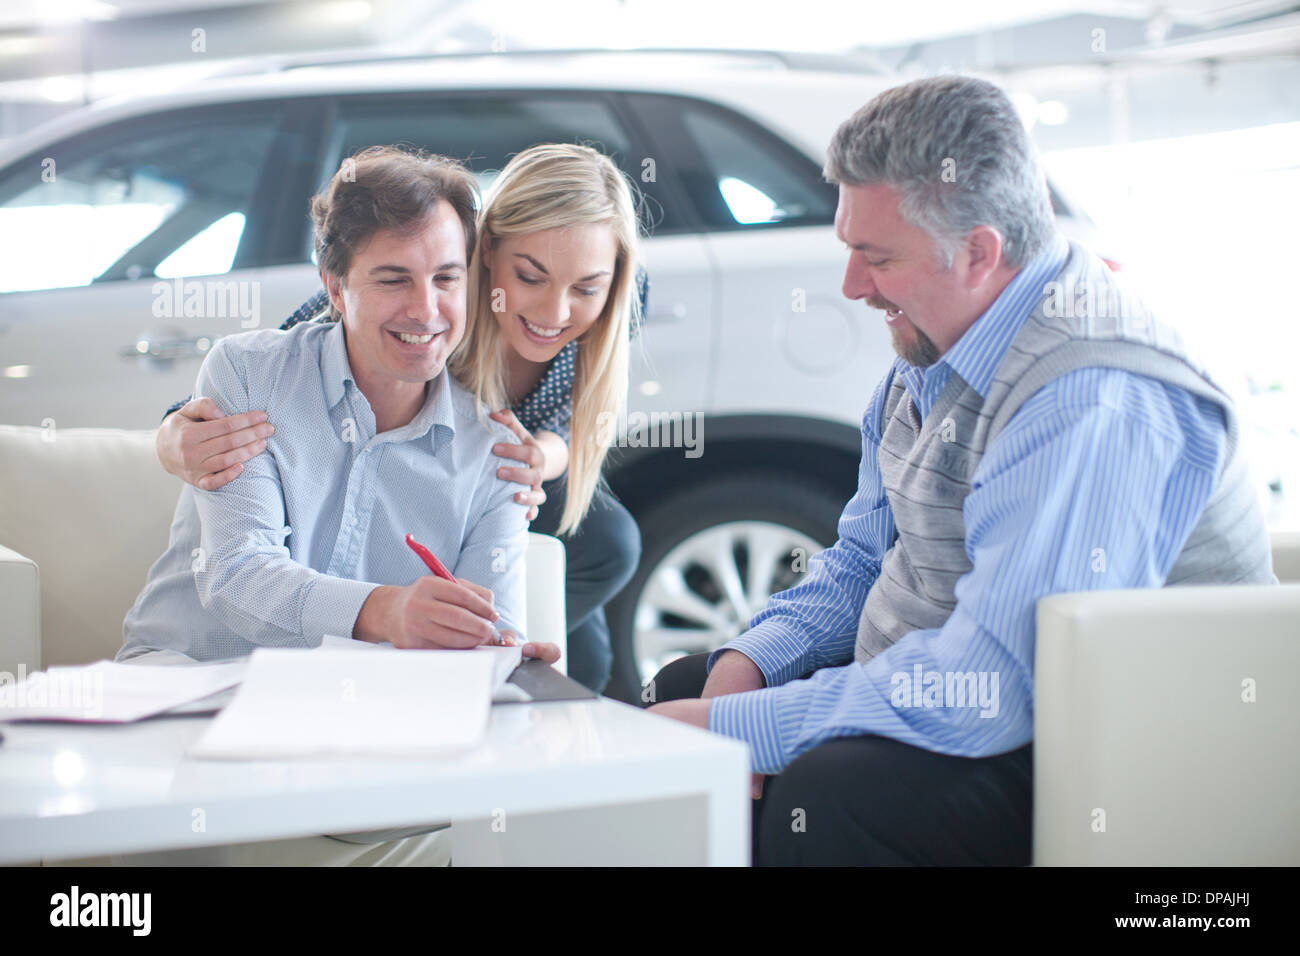 Car salesman and couple signing contract in car showroom - Stock Image